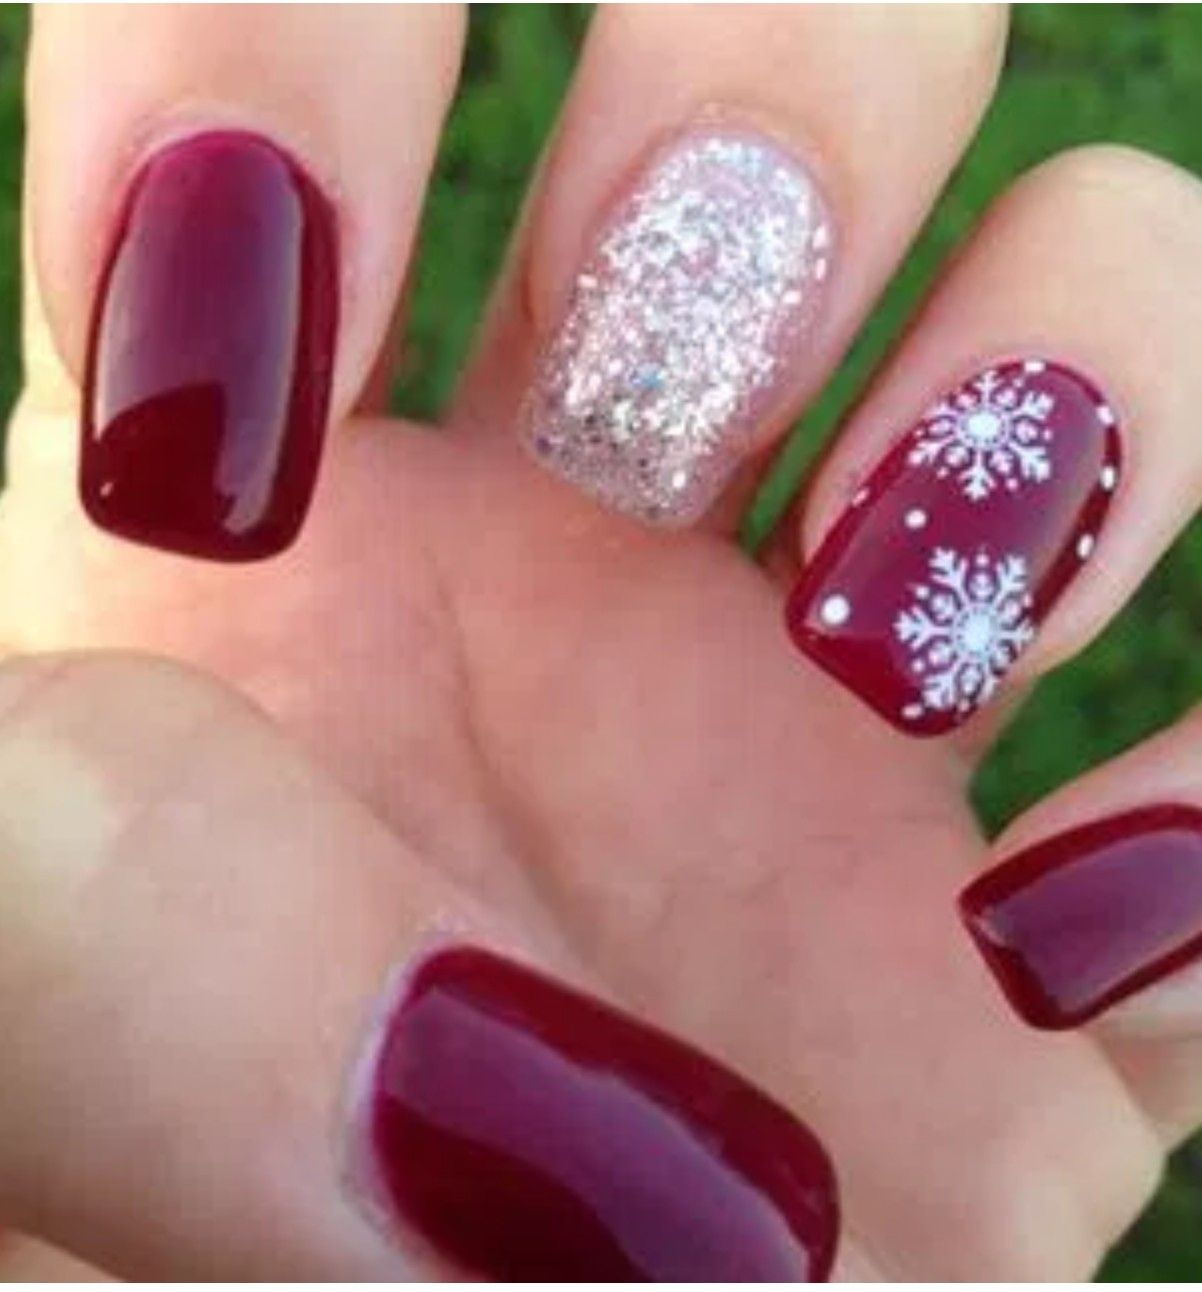 7 Tips For Ocean Chlorine Proofing Your Manicure Nail: Yassssssssssssssssssssssssss!!!!!!!!!!!!